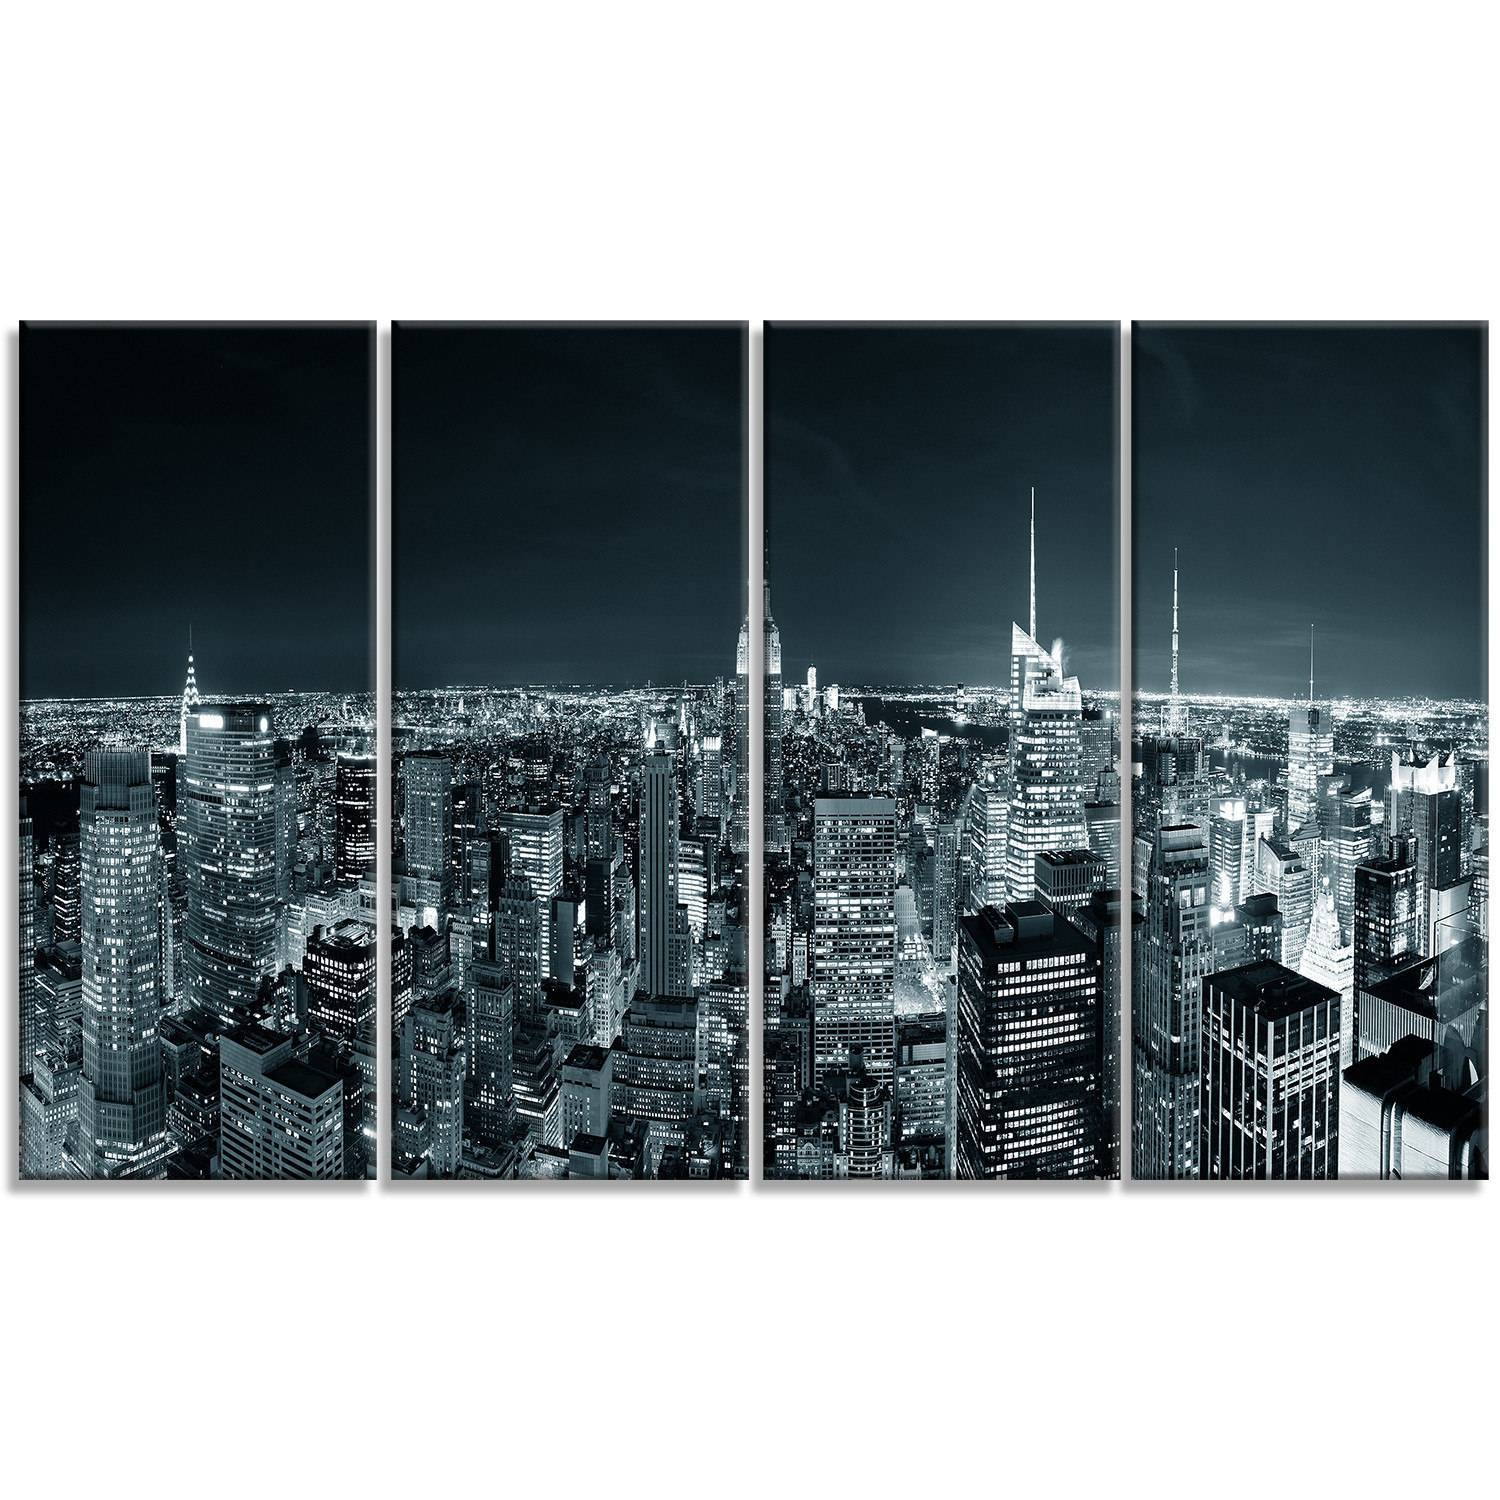 Designart 'new York City Skyline At Night' Cityscape Photo Metal Inside Most Up To Date New York City Skyline Metal Wall Art (View 2 of 20)